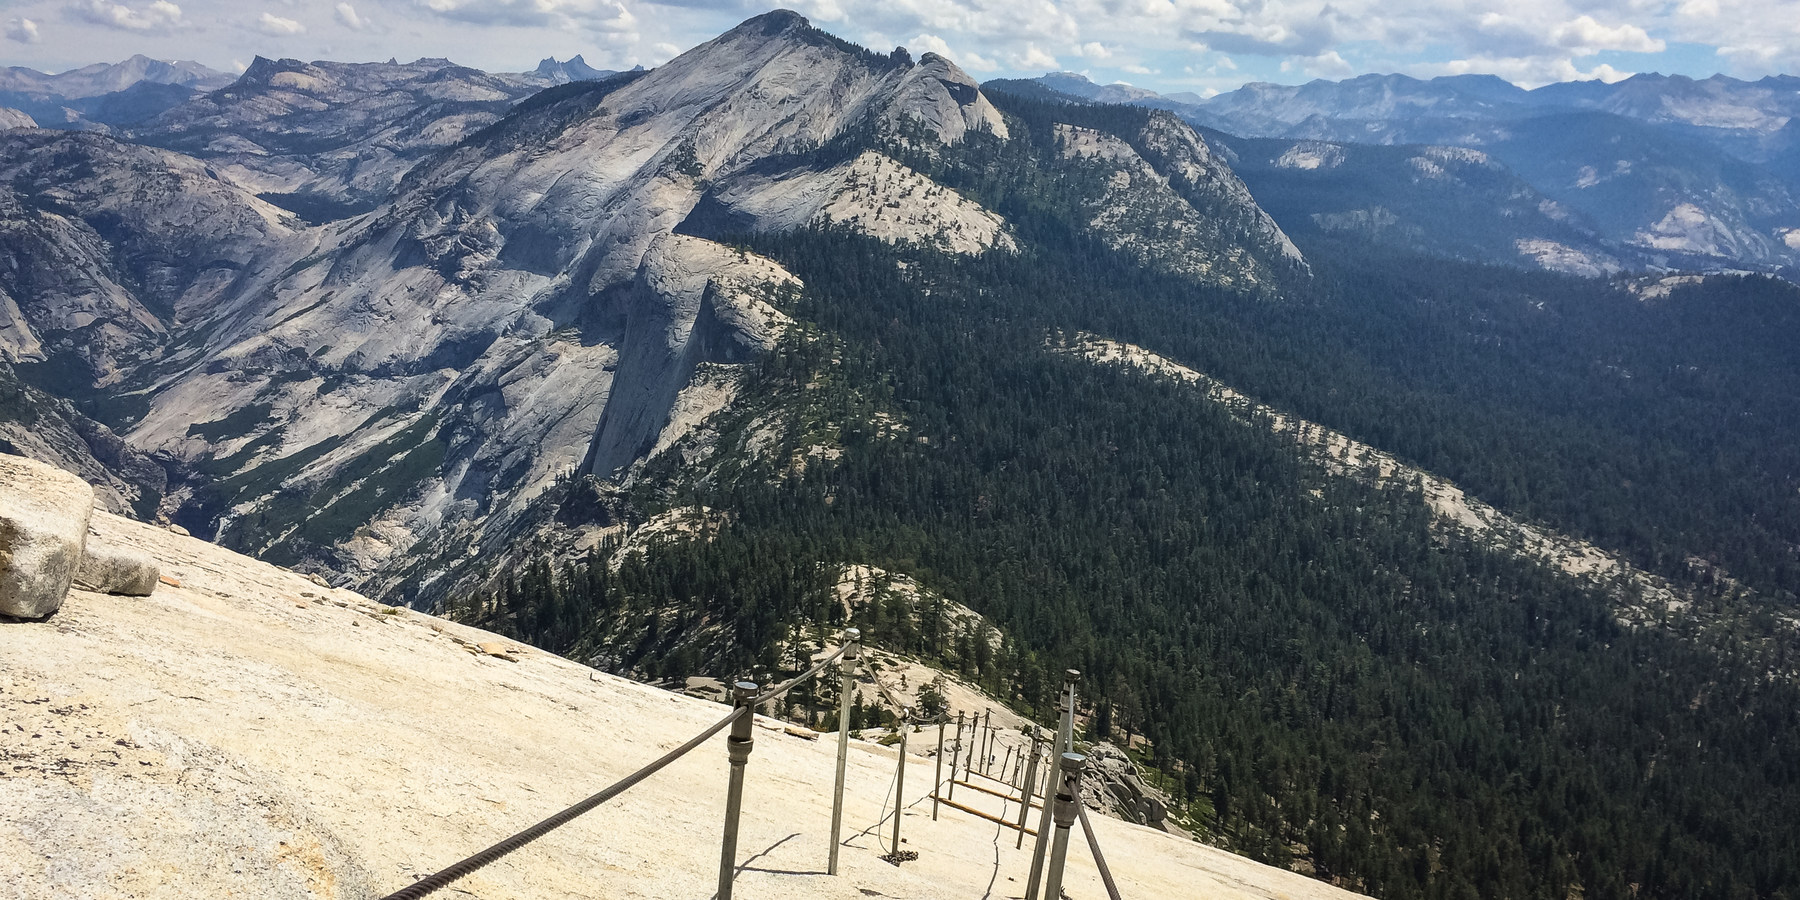 10 best day hikes in yosemite national park - outdoor project